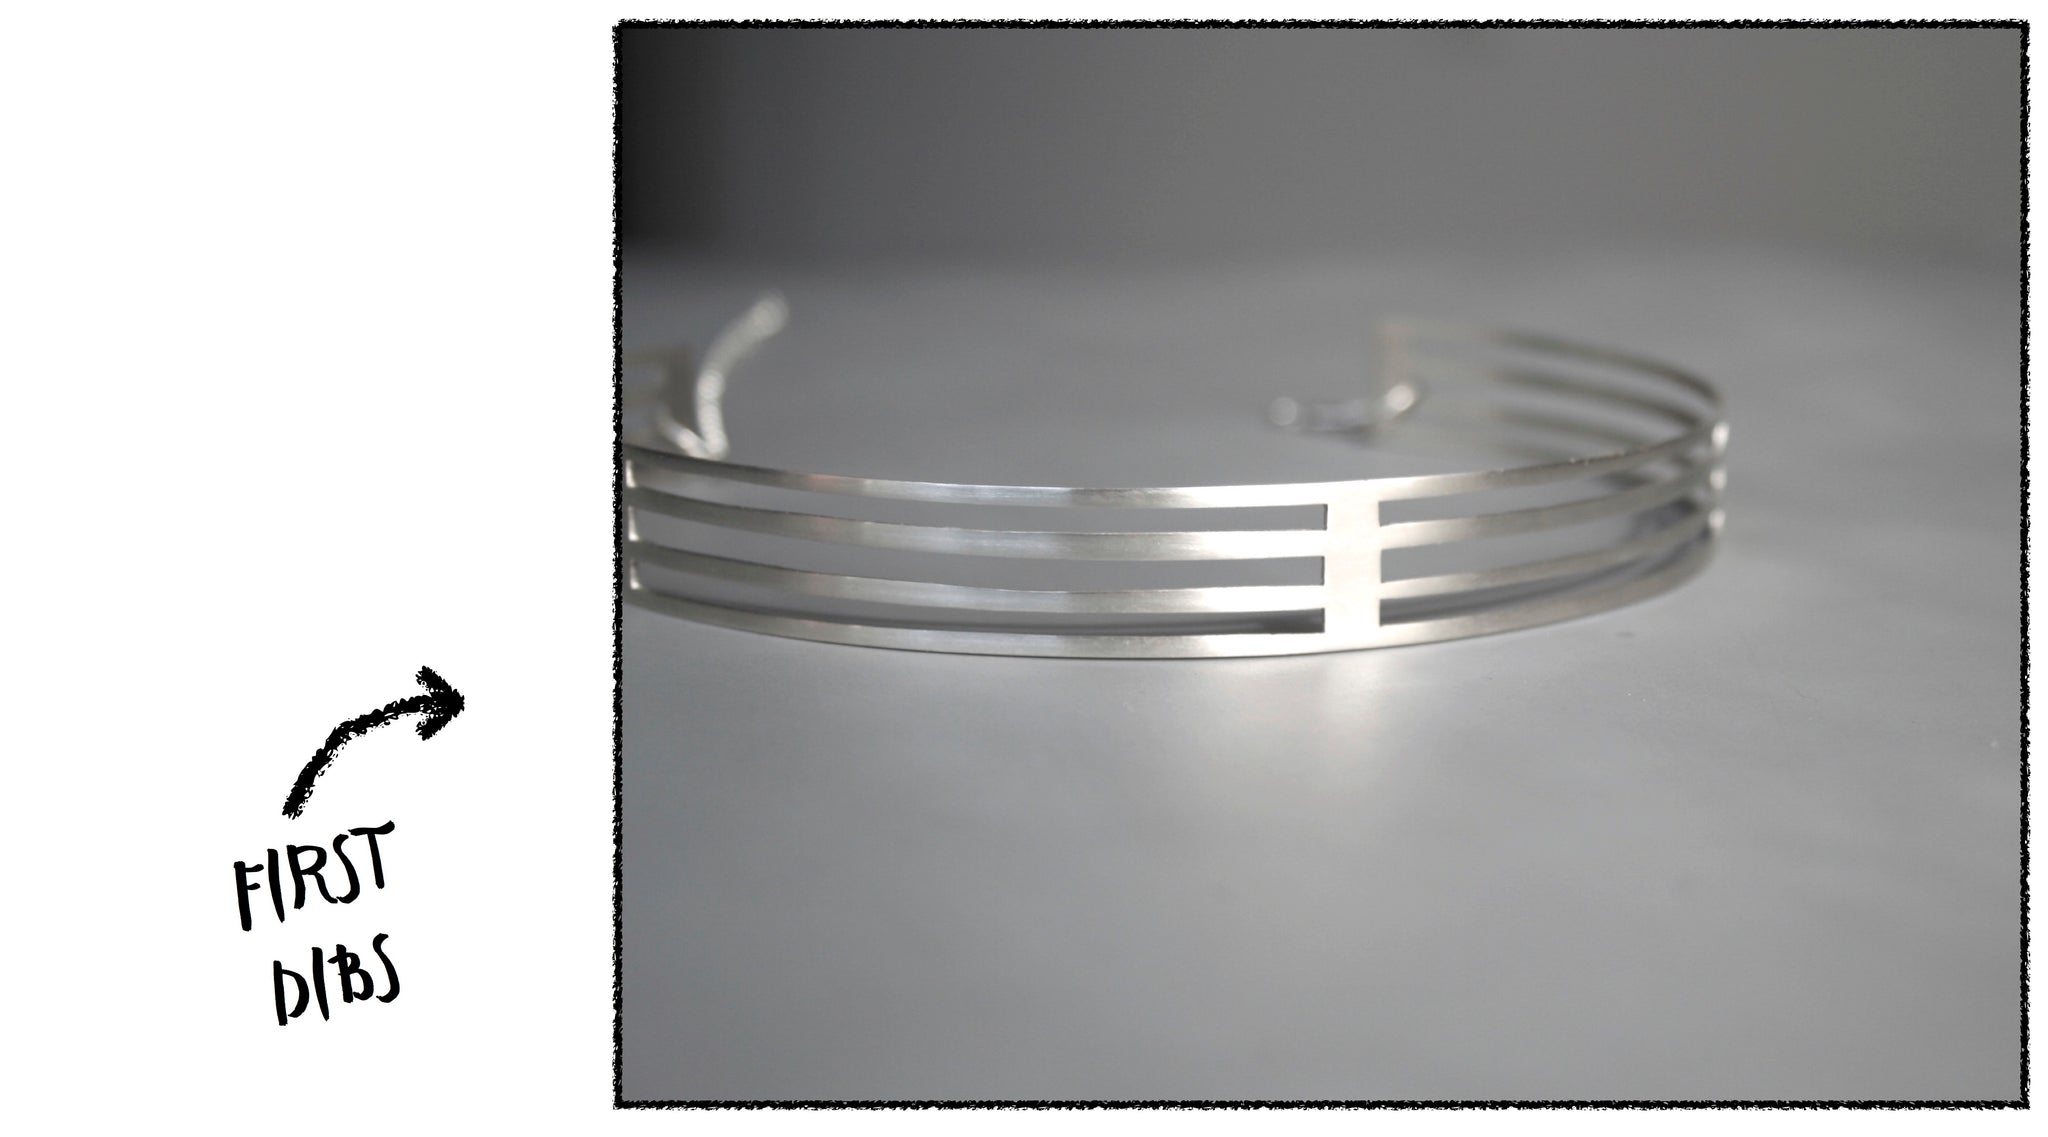 Stripe choker handout by Right Collection